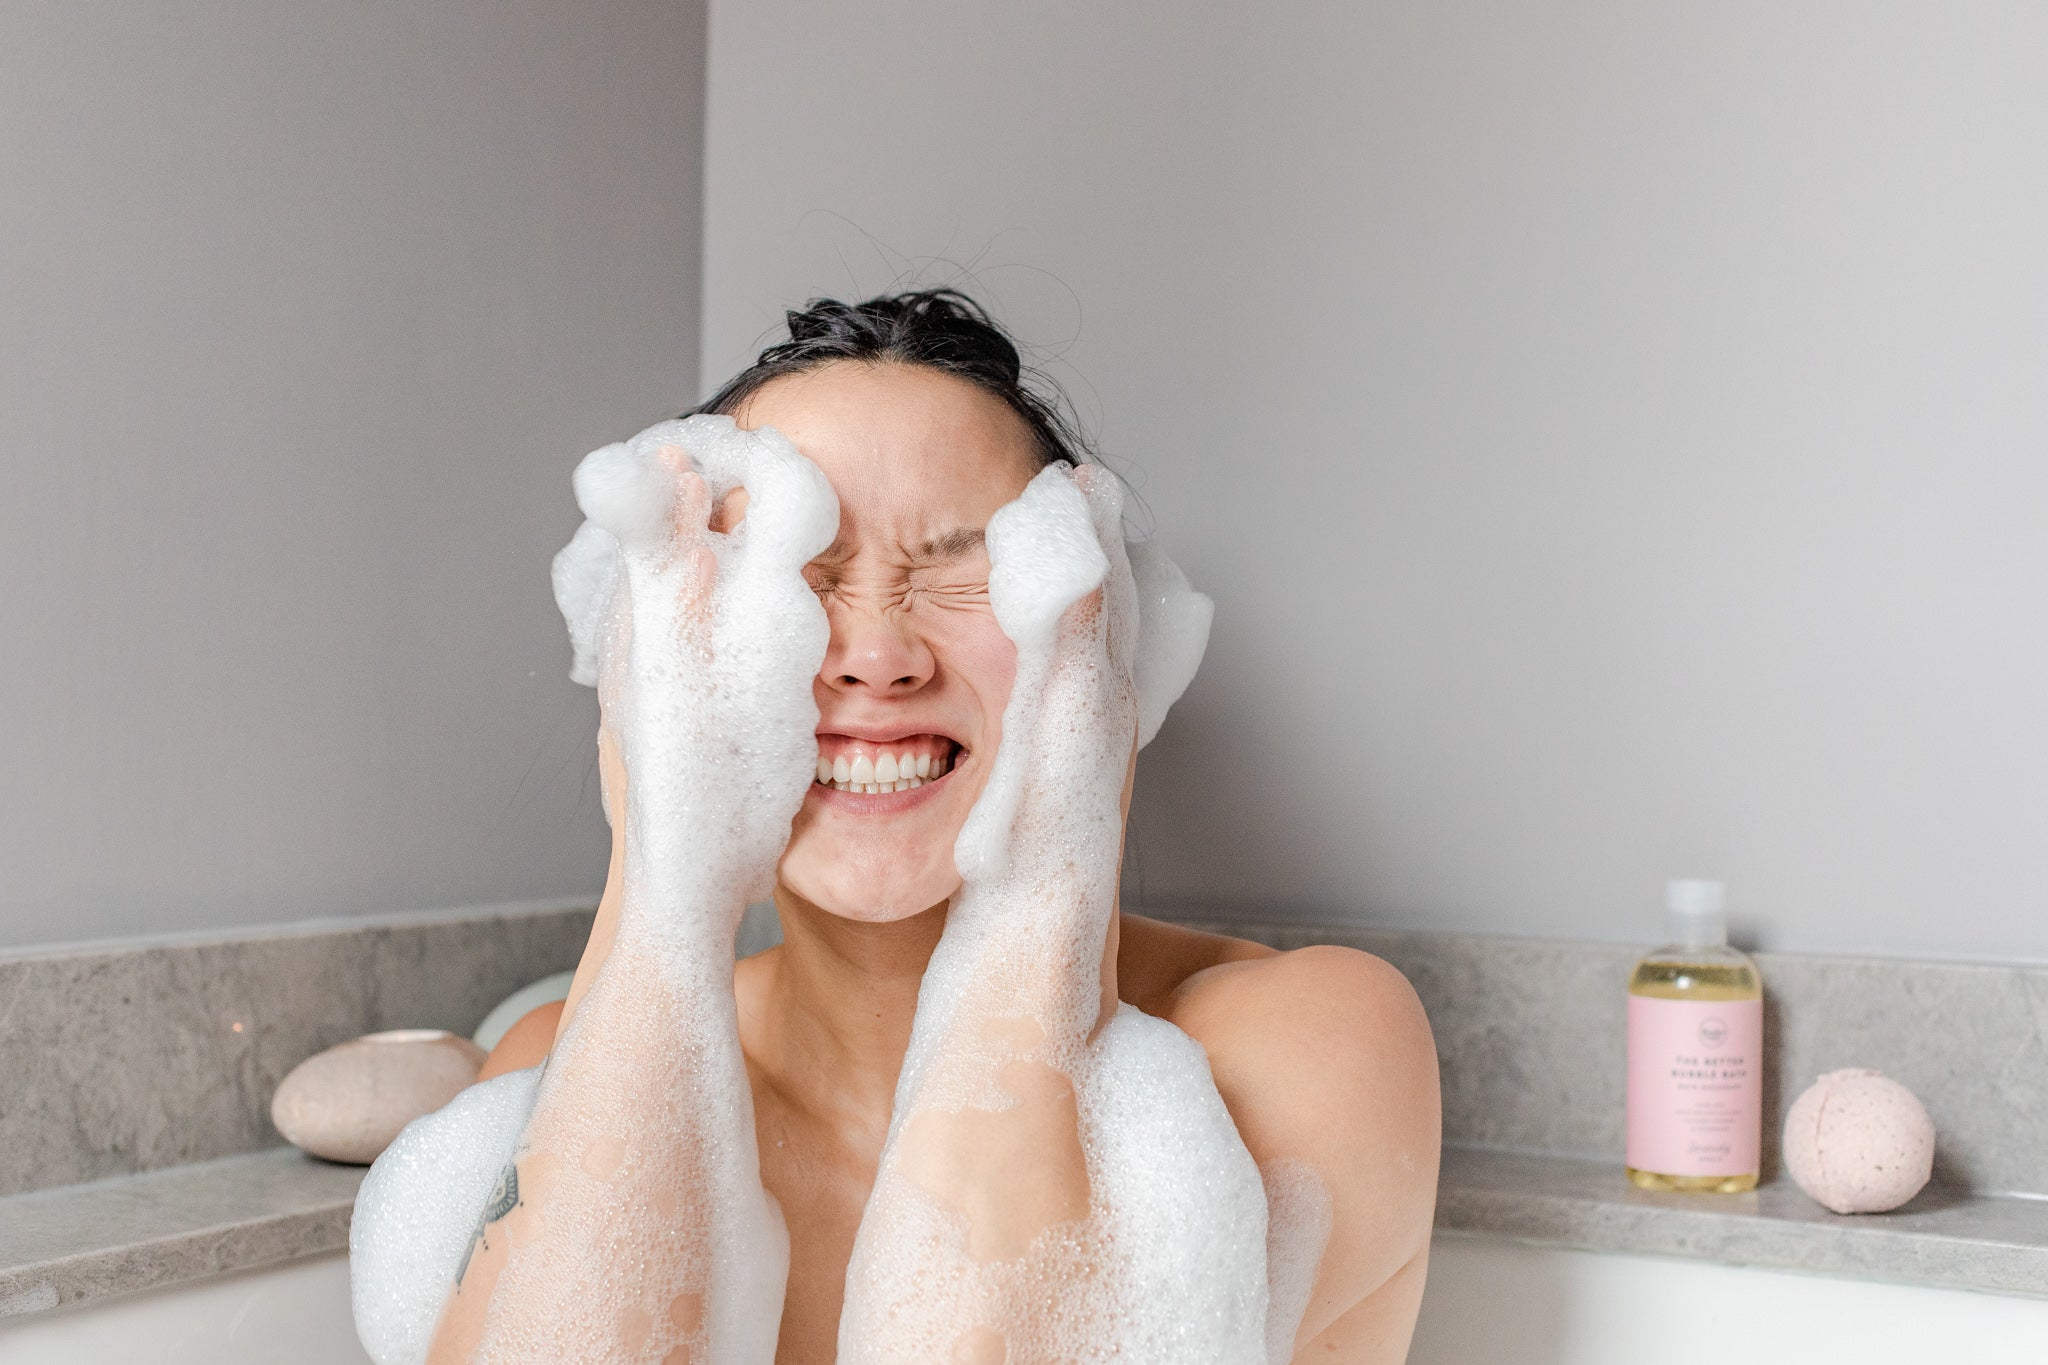 Image of woman and suds on her face with natural bubble bath